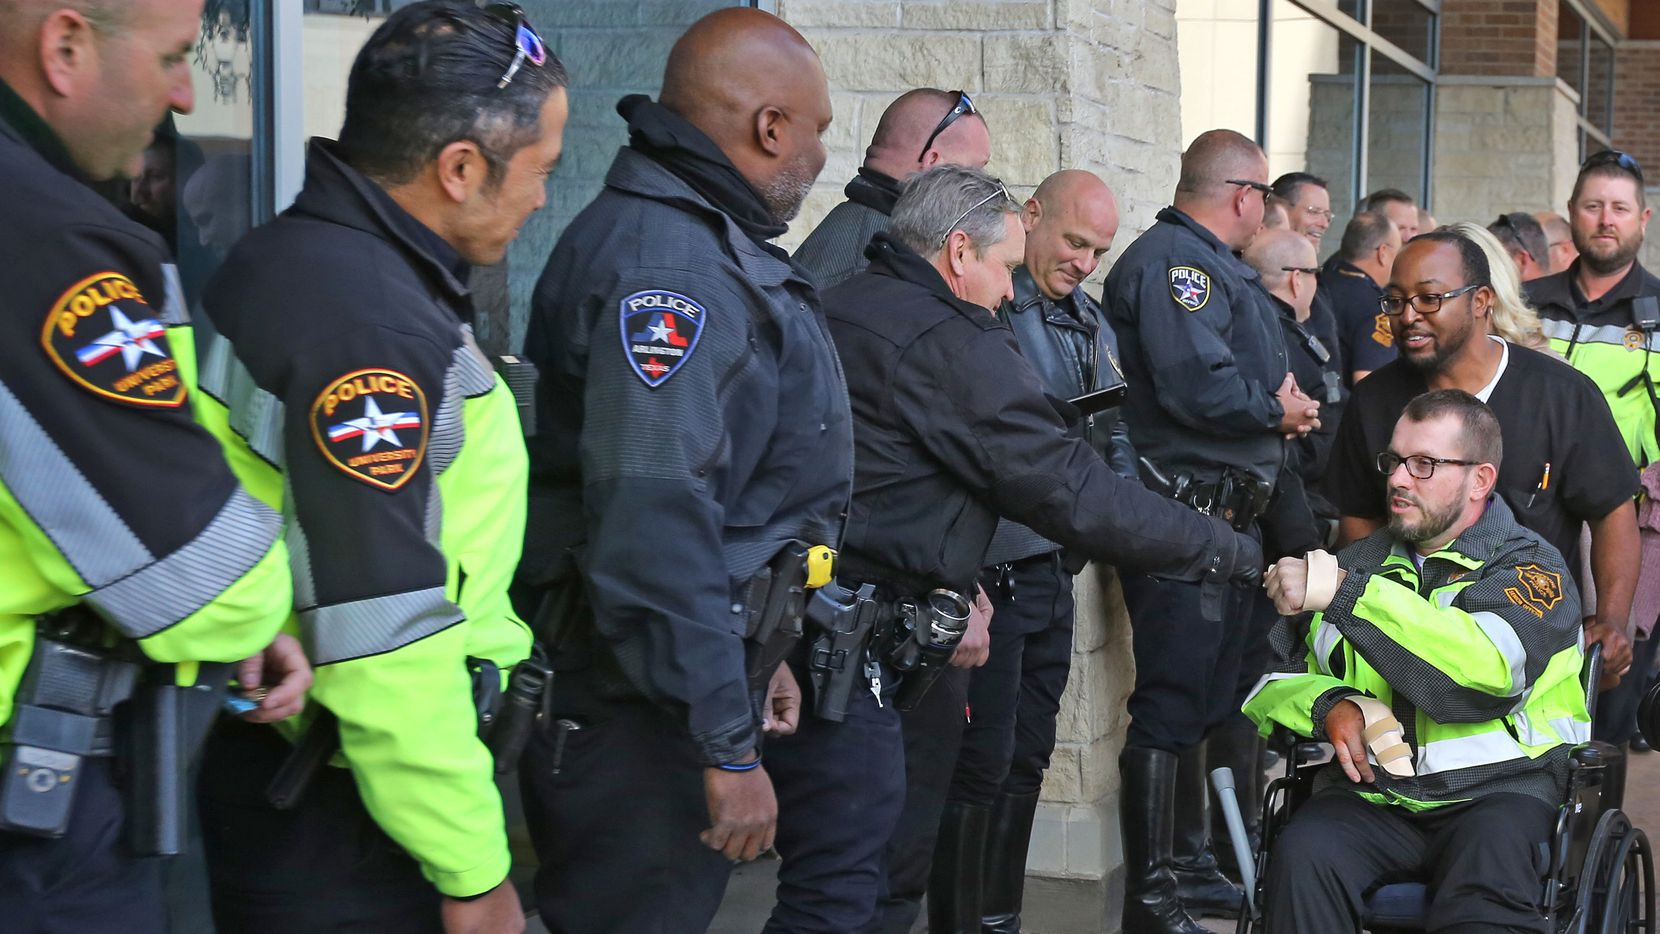 Grapevine Police Senior Officer RJ Hudson is greeted by fellow law enforcement officers from around the area after being released from Baylor Scott & White Medical Center-Grapevine, after being seriously injured in a crash five weeks ago on his motorcycle.